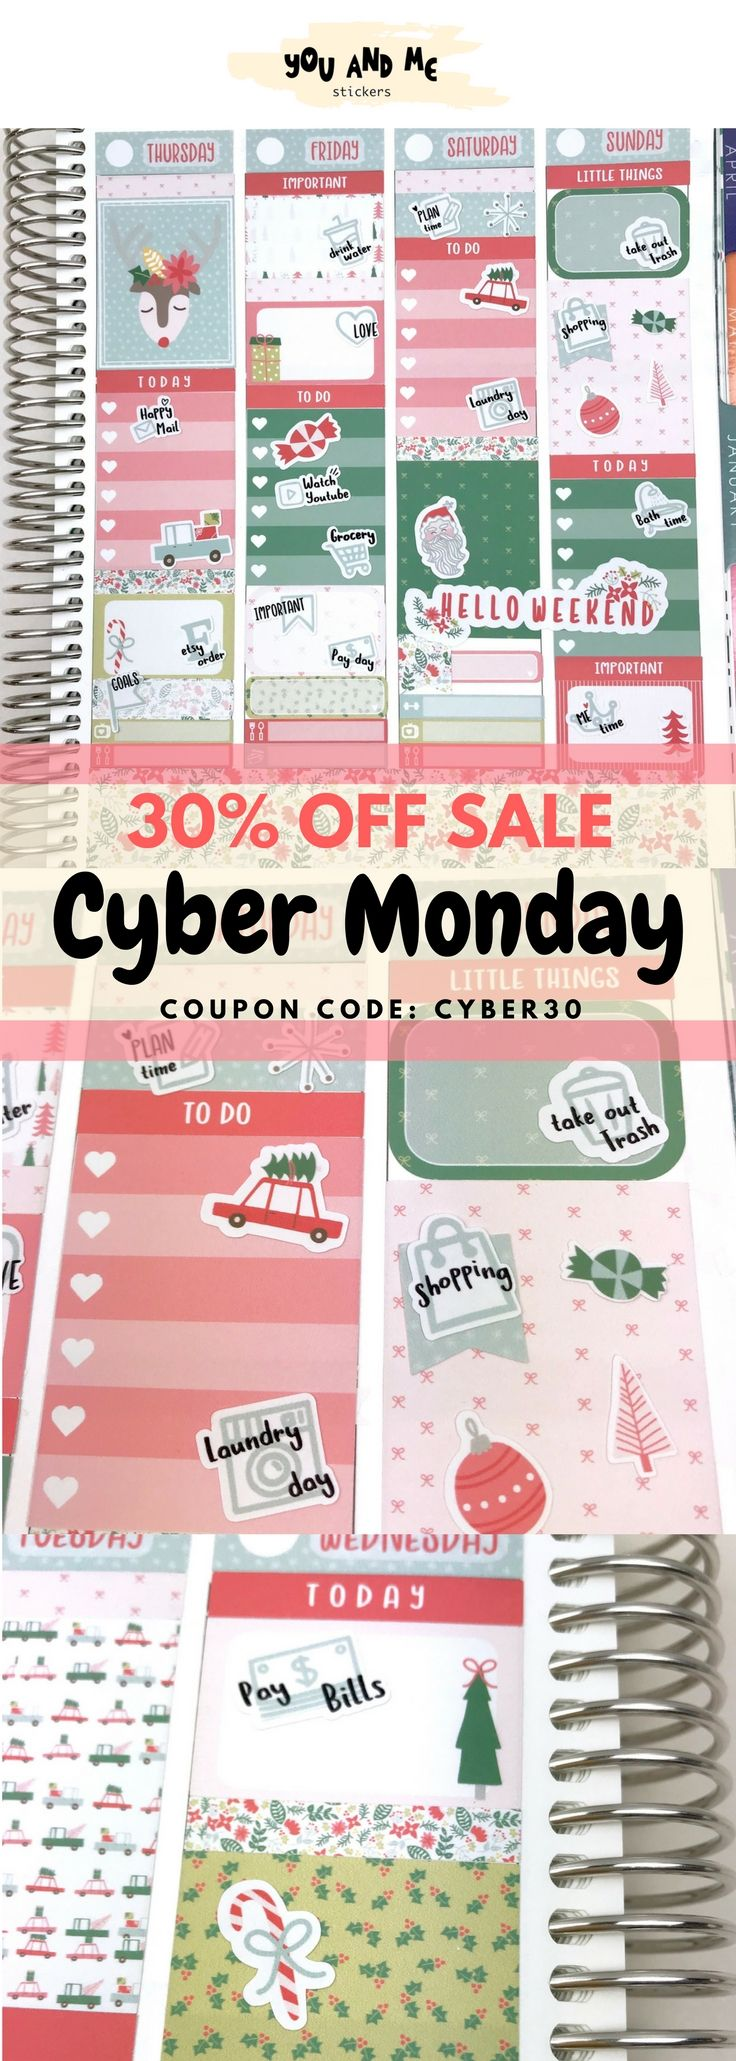 #youandmestickers Cyber Monday sale! Please use a coupon code CYBER30 to get 30% off for your purchase. Many NEW planner stickers are up in the shop. Please don't forget to check them out and grab your favorite You and Me Stickers. Hurry up! Don't miss this great sale :) Thank you!            #plannerstickers #plannercommunity #plannergirl #planneraddict #Planners #erincondren #happyplanner #bulletjournal #weeklykit #weeklystickers #recollections